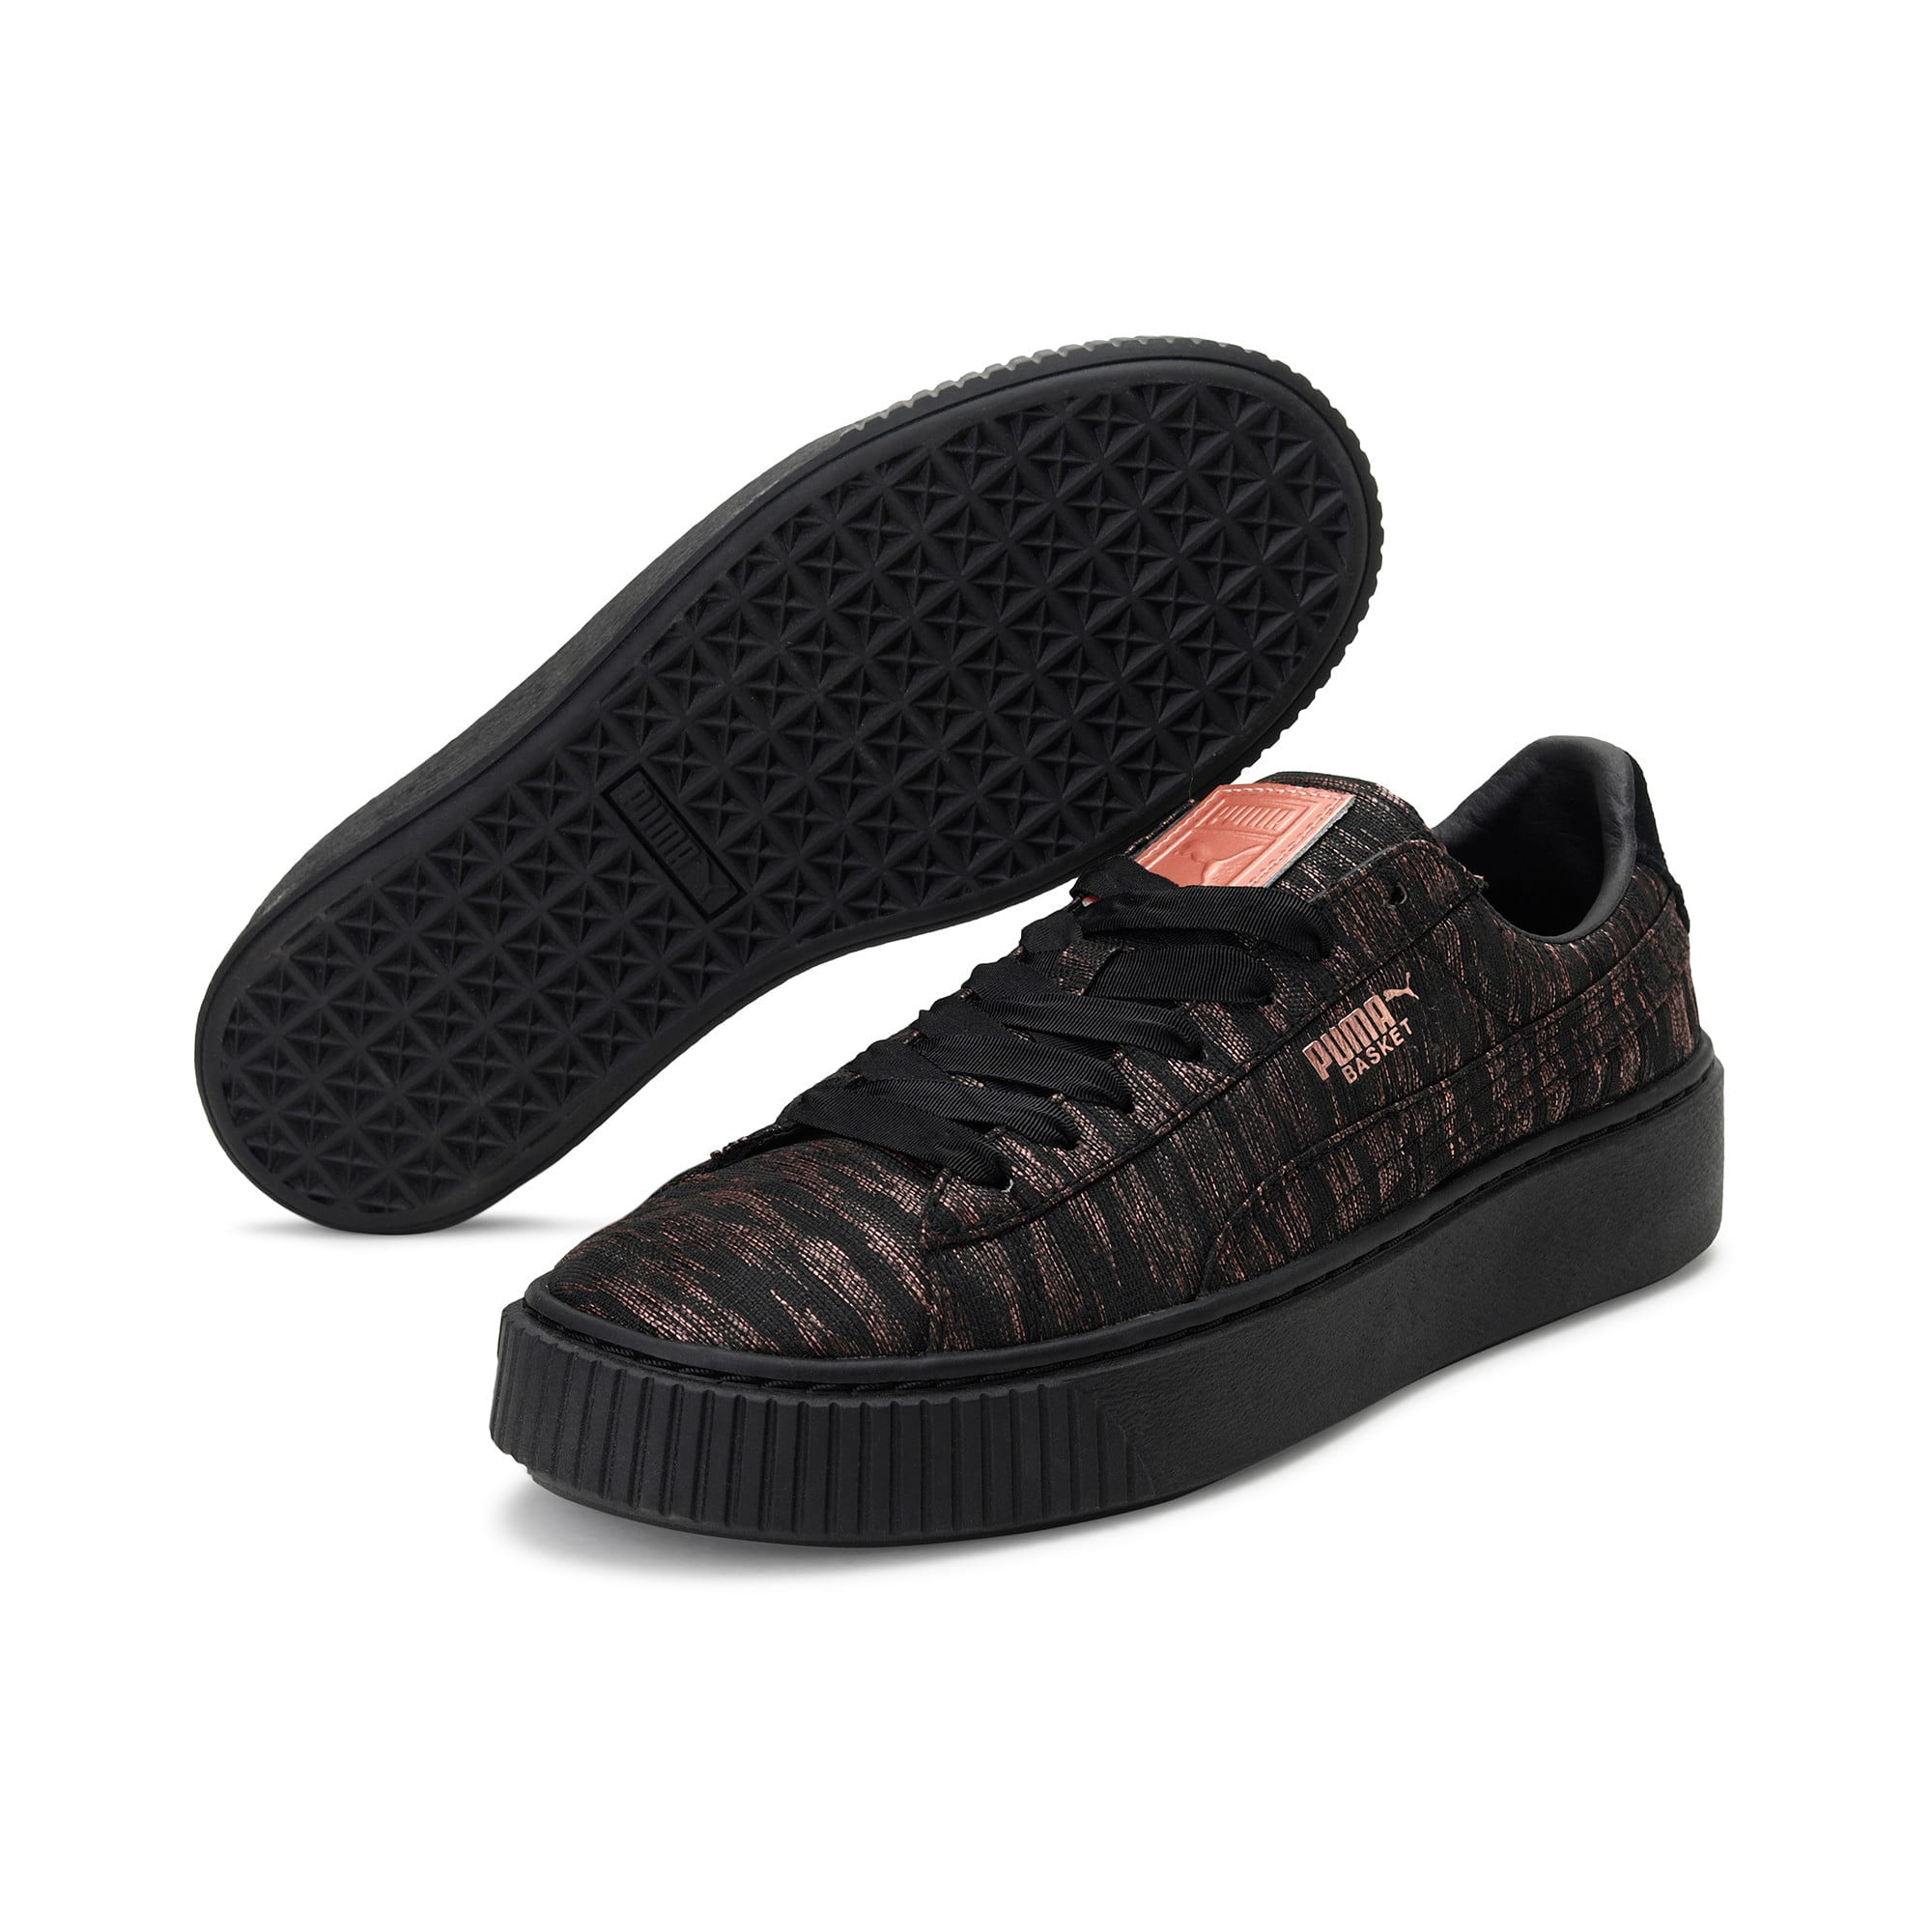 Thumbnail 2 of Basket Platform Velvet Rope Women's Trainers, Puma Black-Puma Black, medium-IND